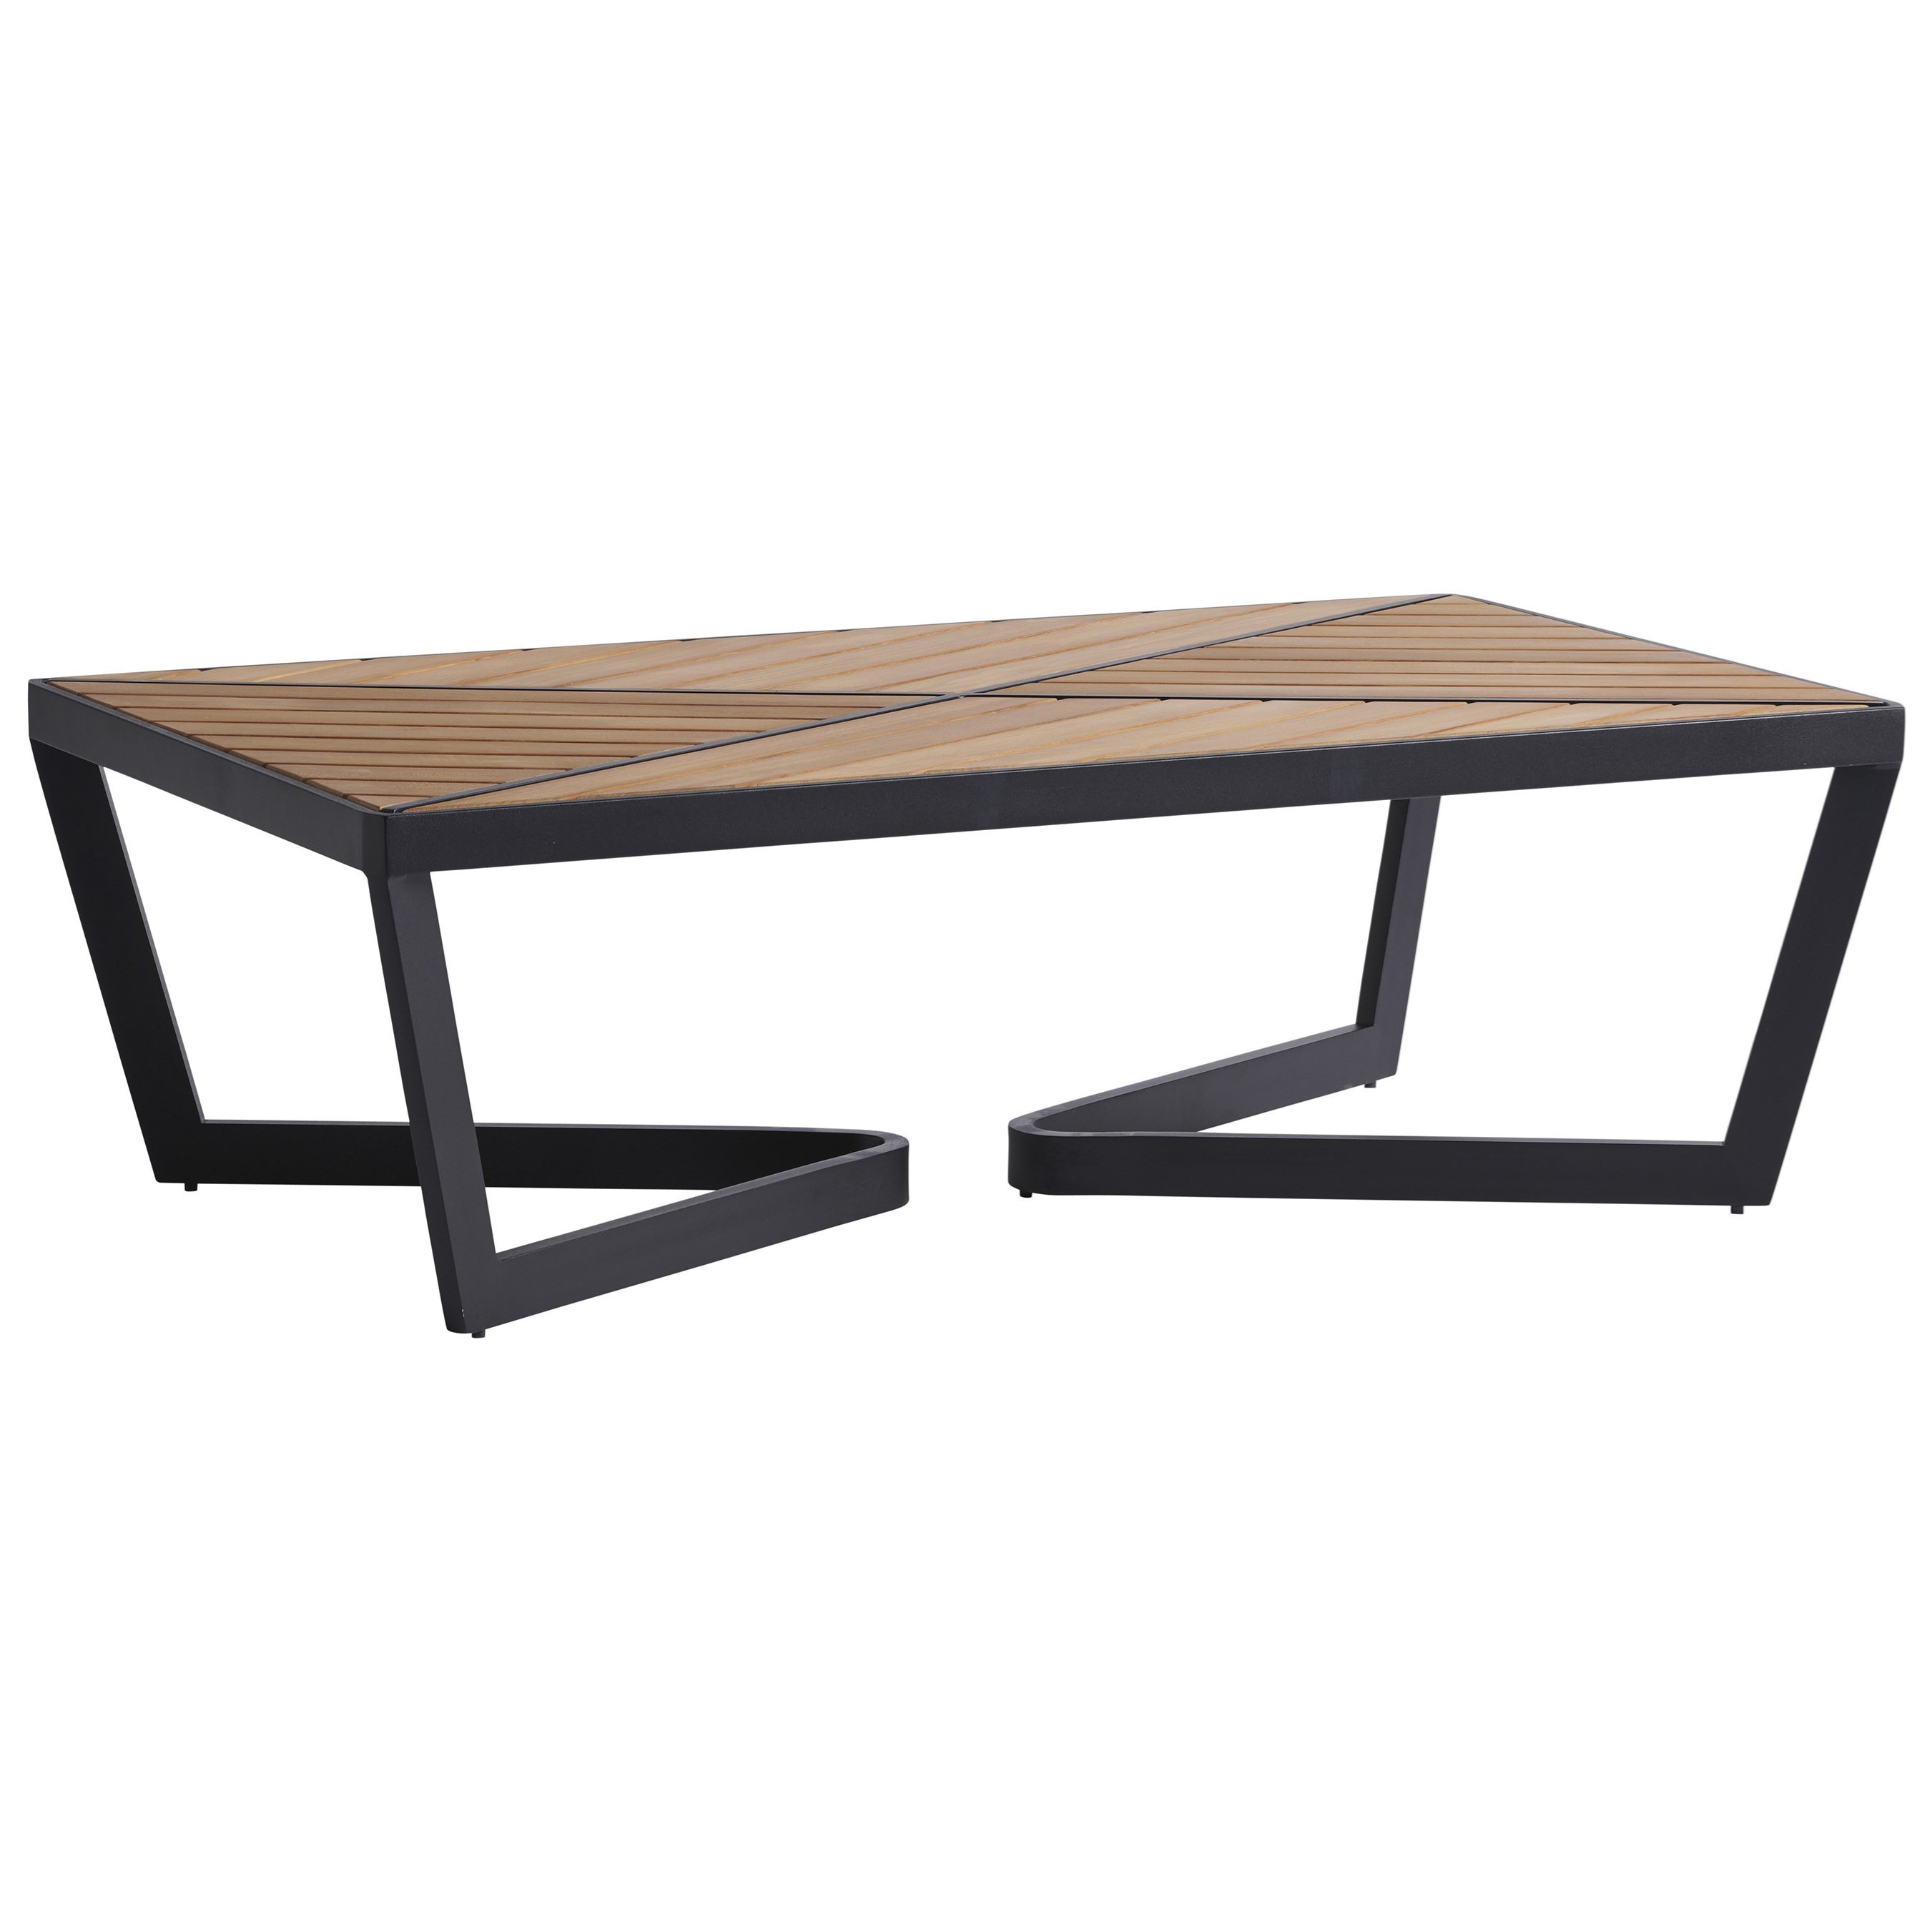 South Beach Rectangular Cocktail Table by Tommy Bahama Outdoor Living at Baer's Furniture